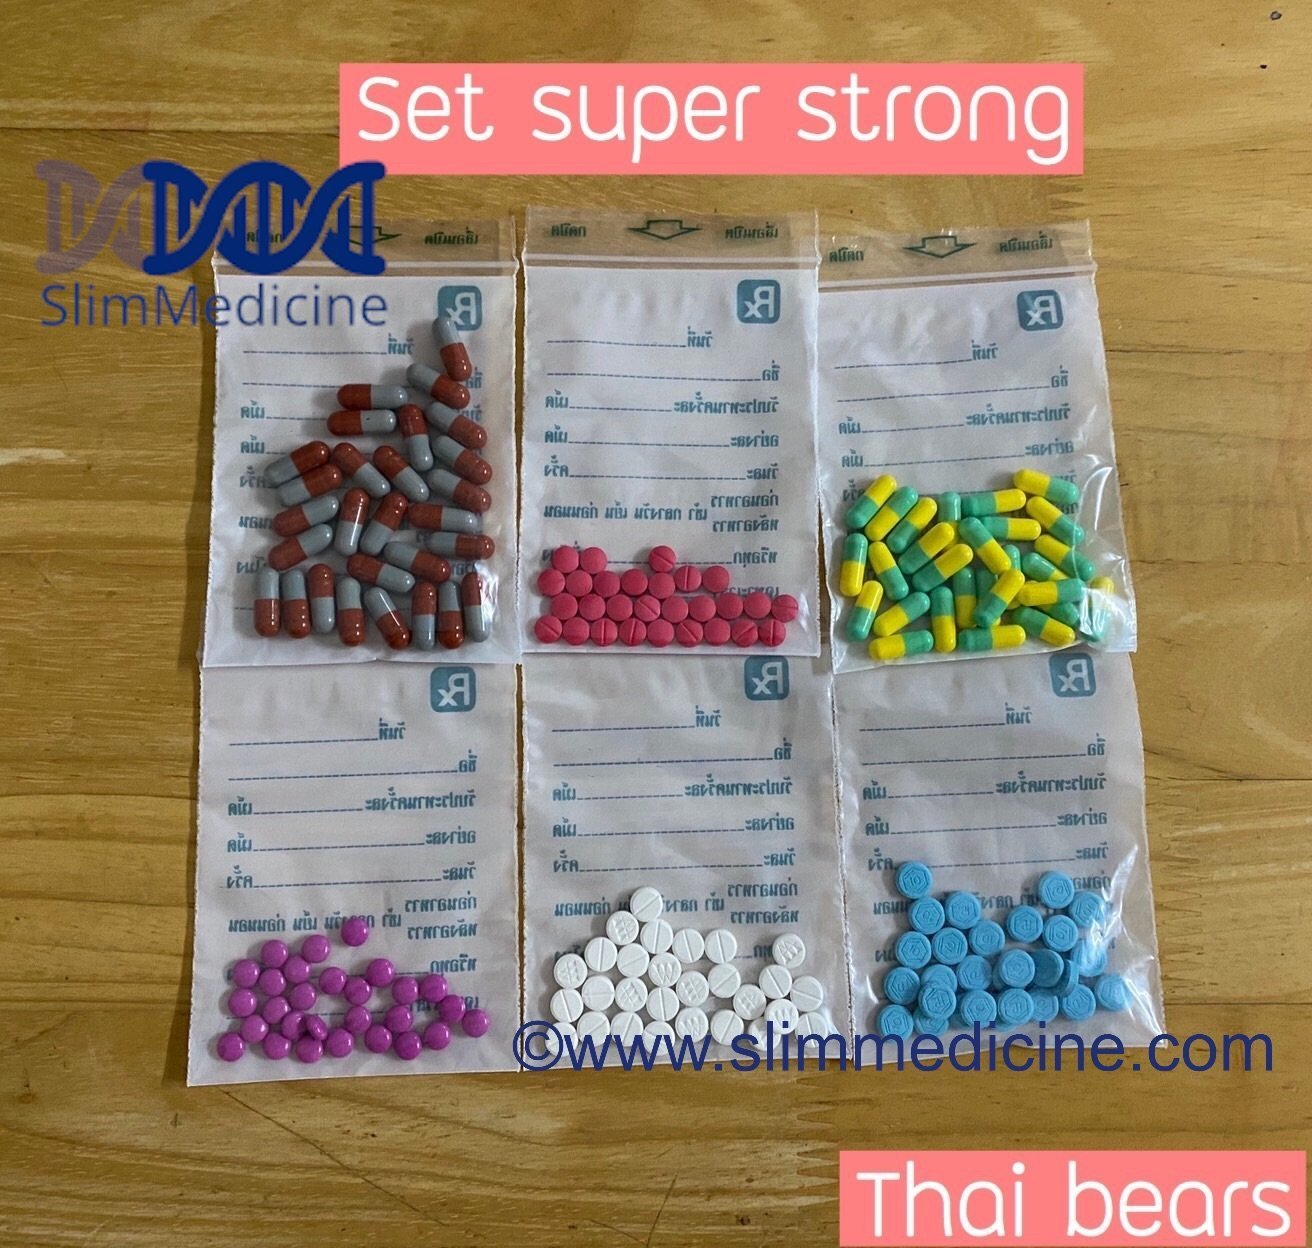 Super strong Thai bears diet pills